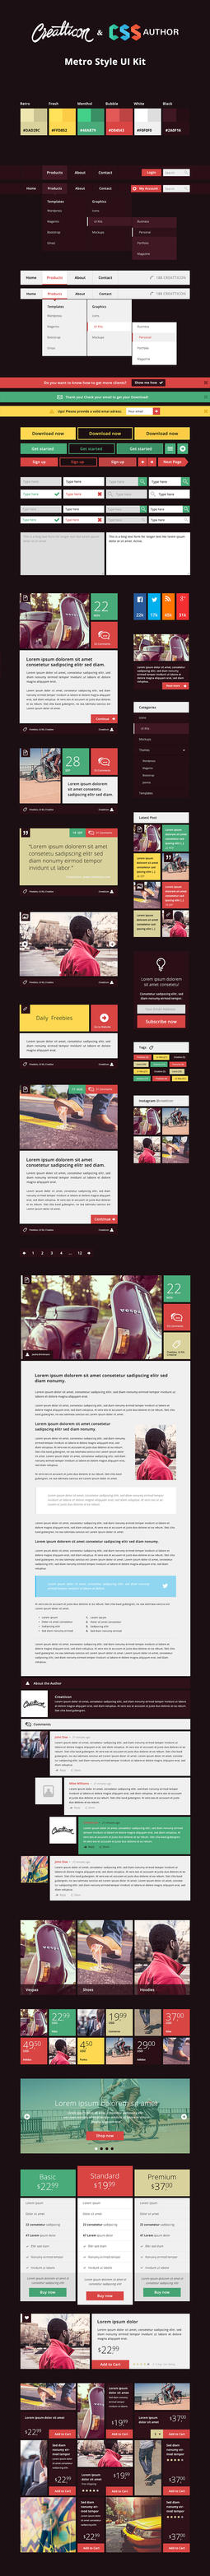 FREEBIE: Flat Metro Style UI Kit on CSS Author by creatticon